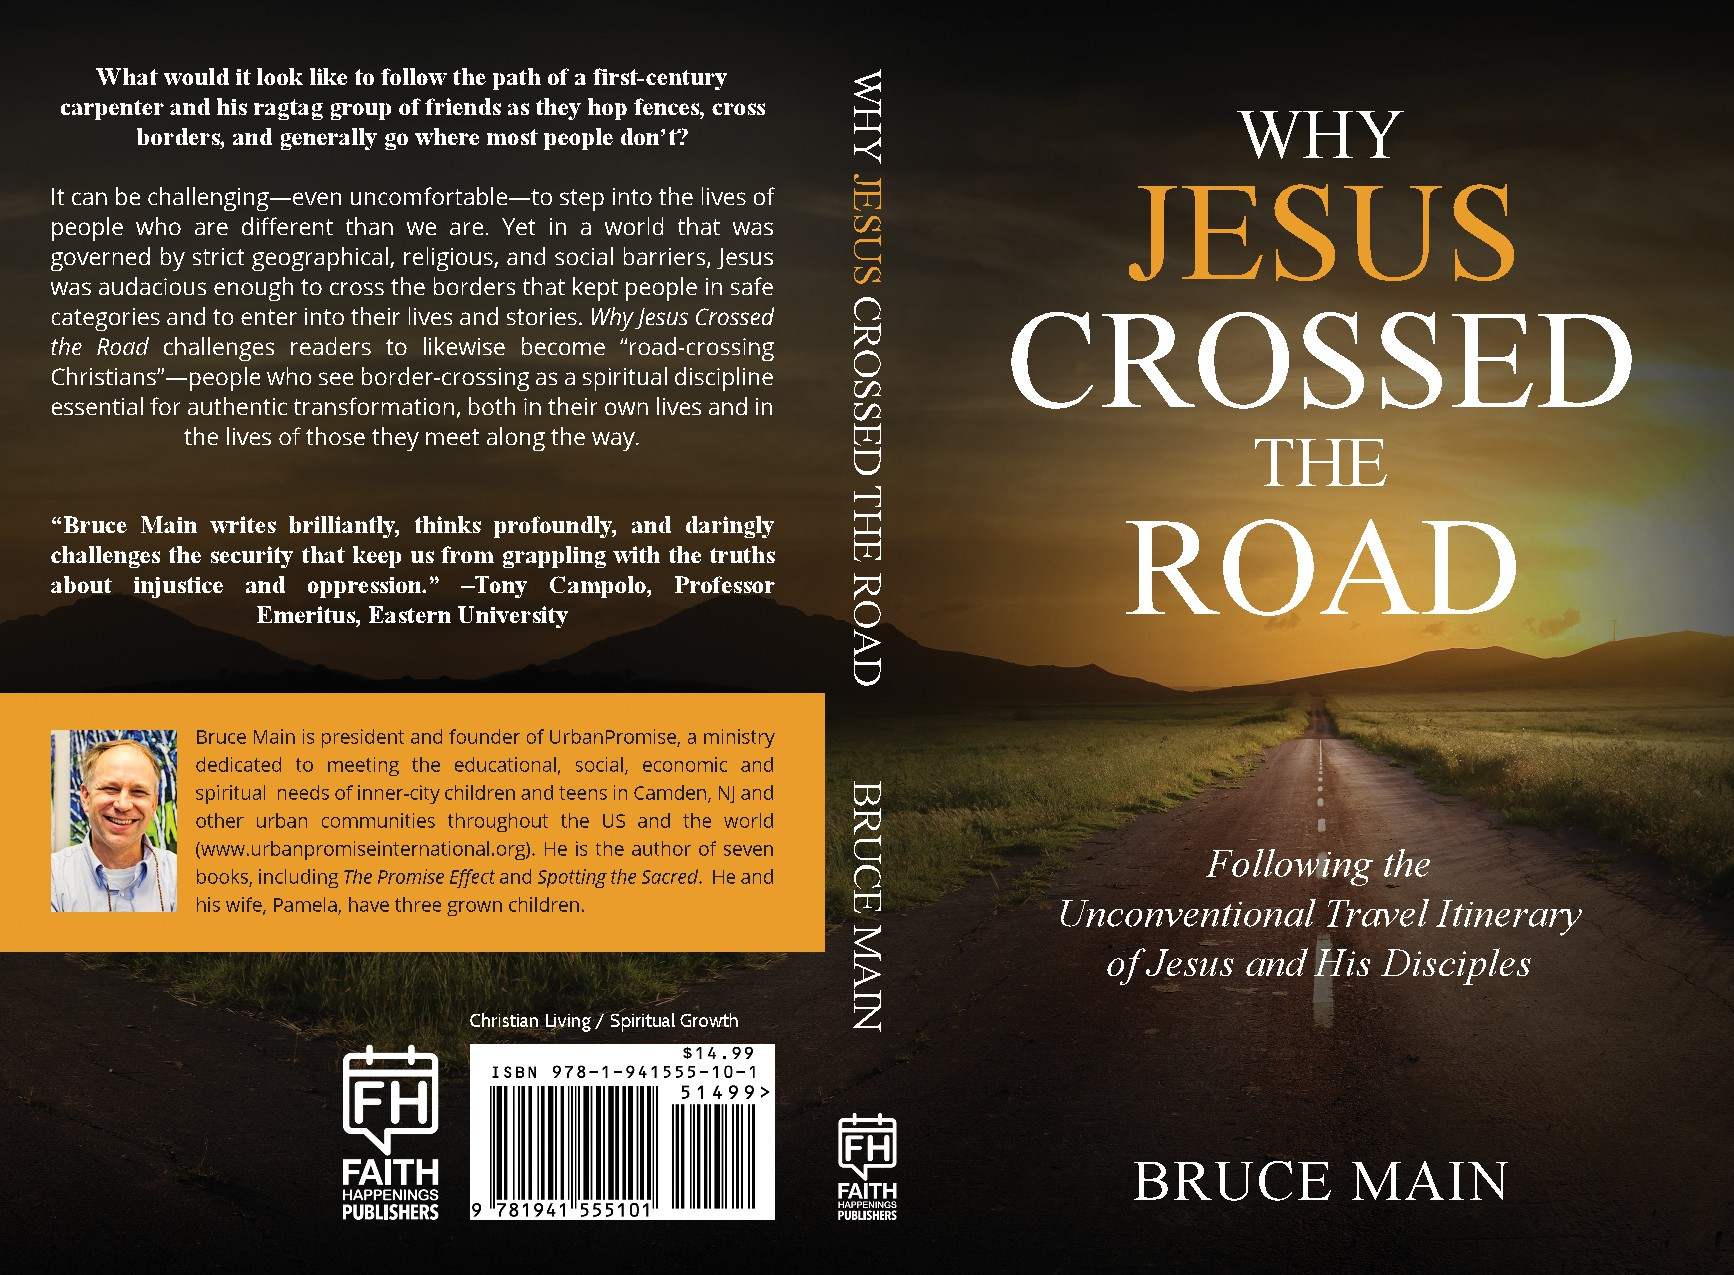 Create a book cover for a book on what it means to authentically follow Jesus